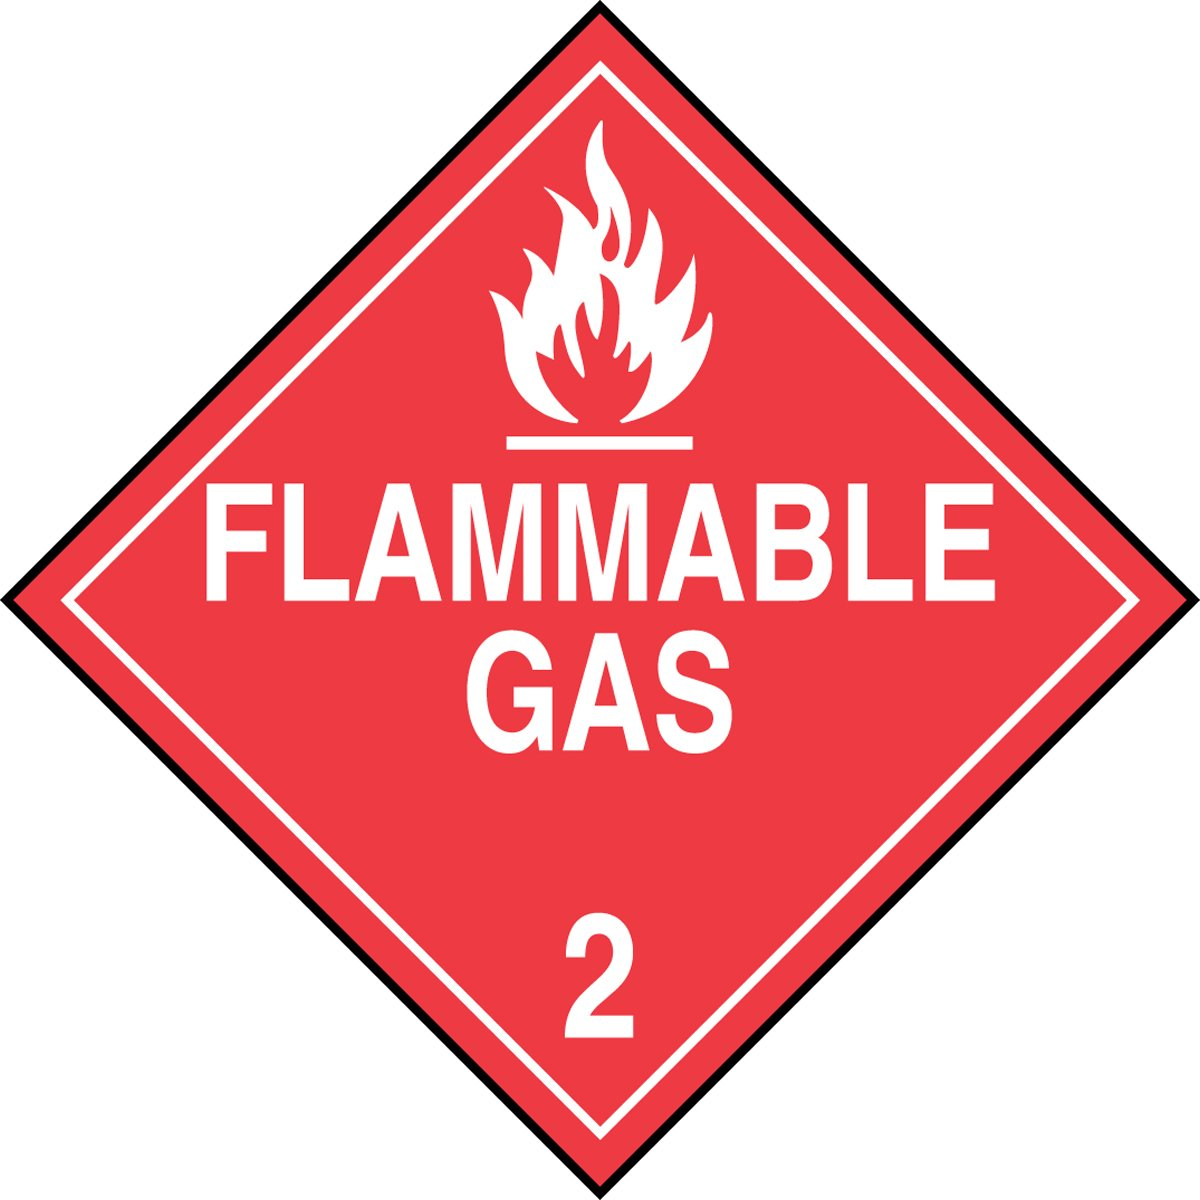 Pack of 25 White on Red Accuform MPL202VS25 Adhesive Vinyl Hazard Class 2 DOT Placard 10-3//4 Width x 10-3//4 Length LegendFlammable Gas 2 with Graphic